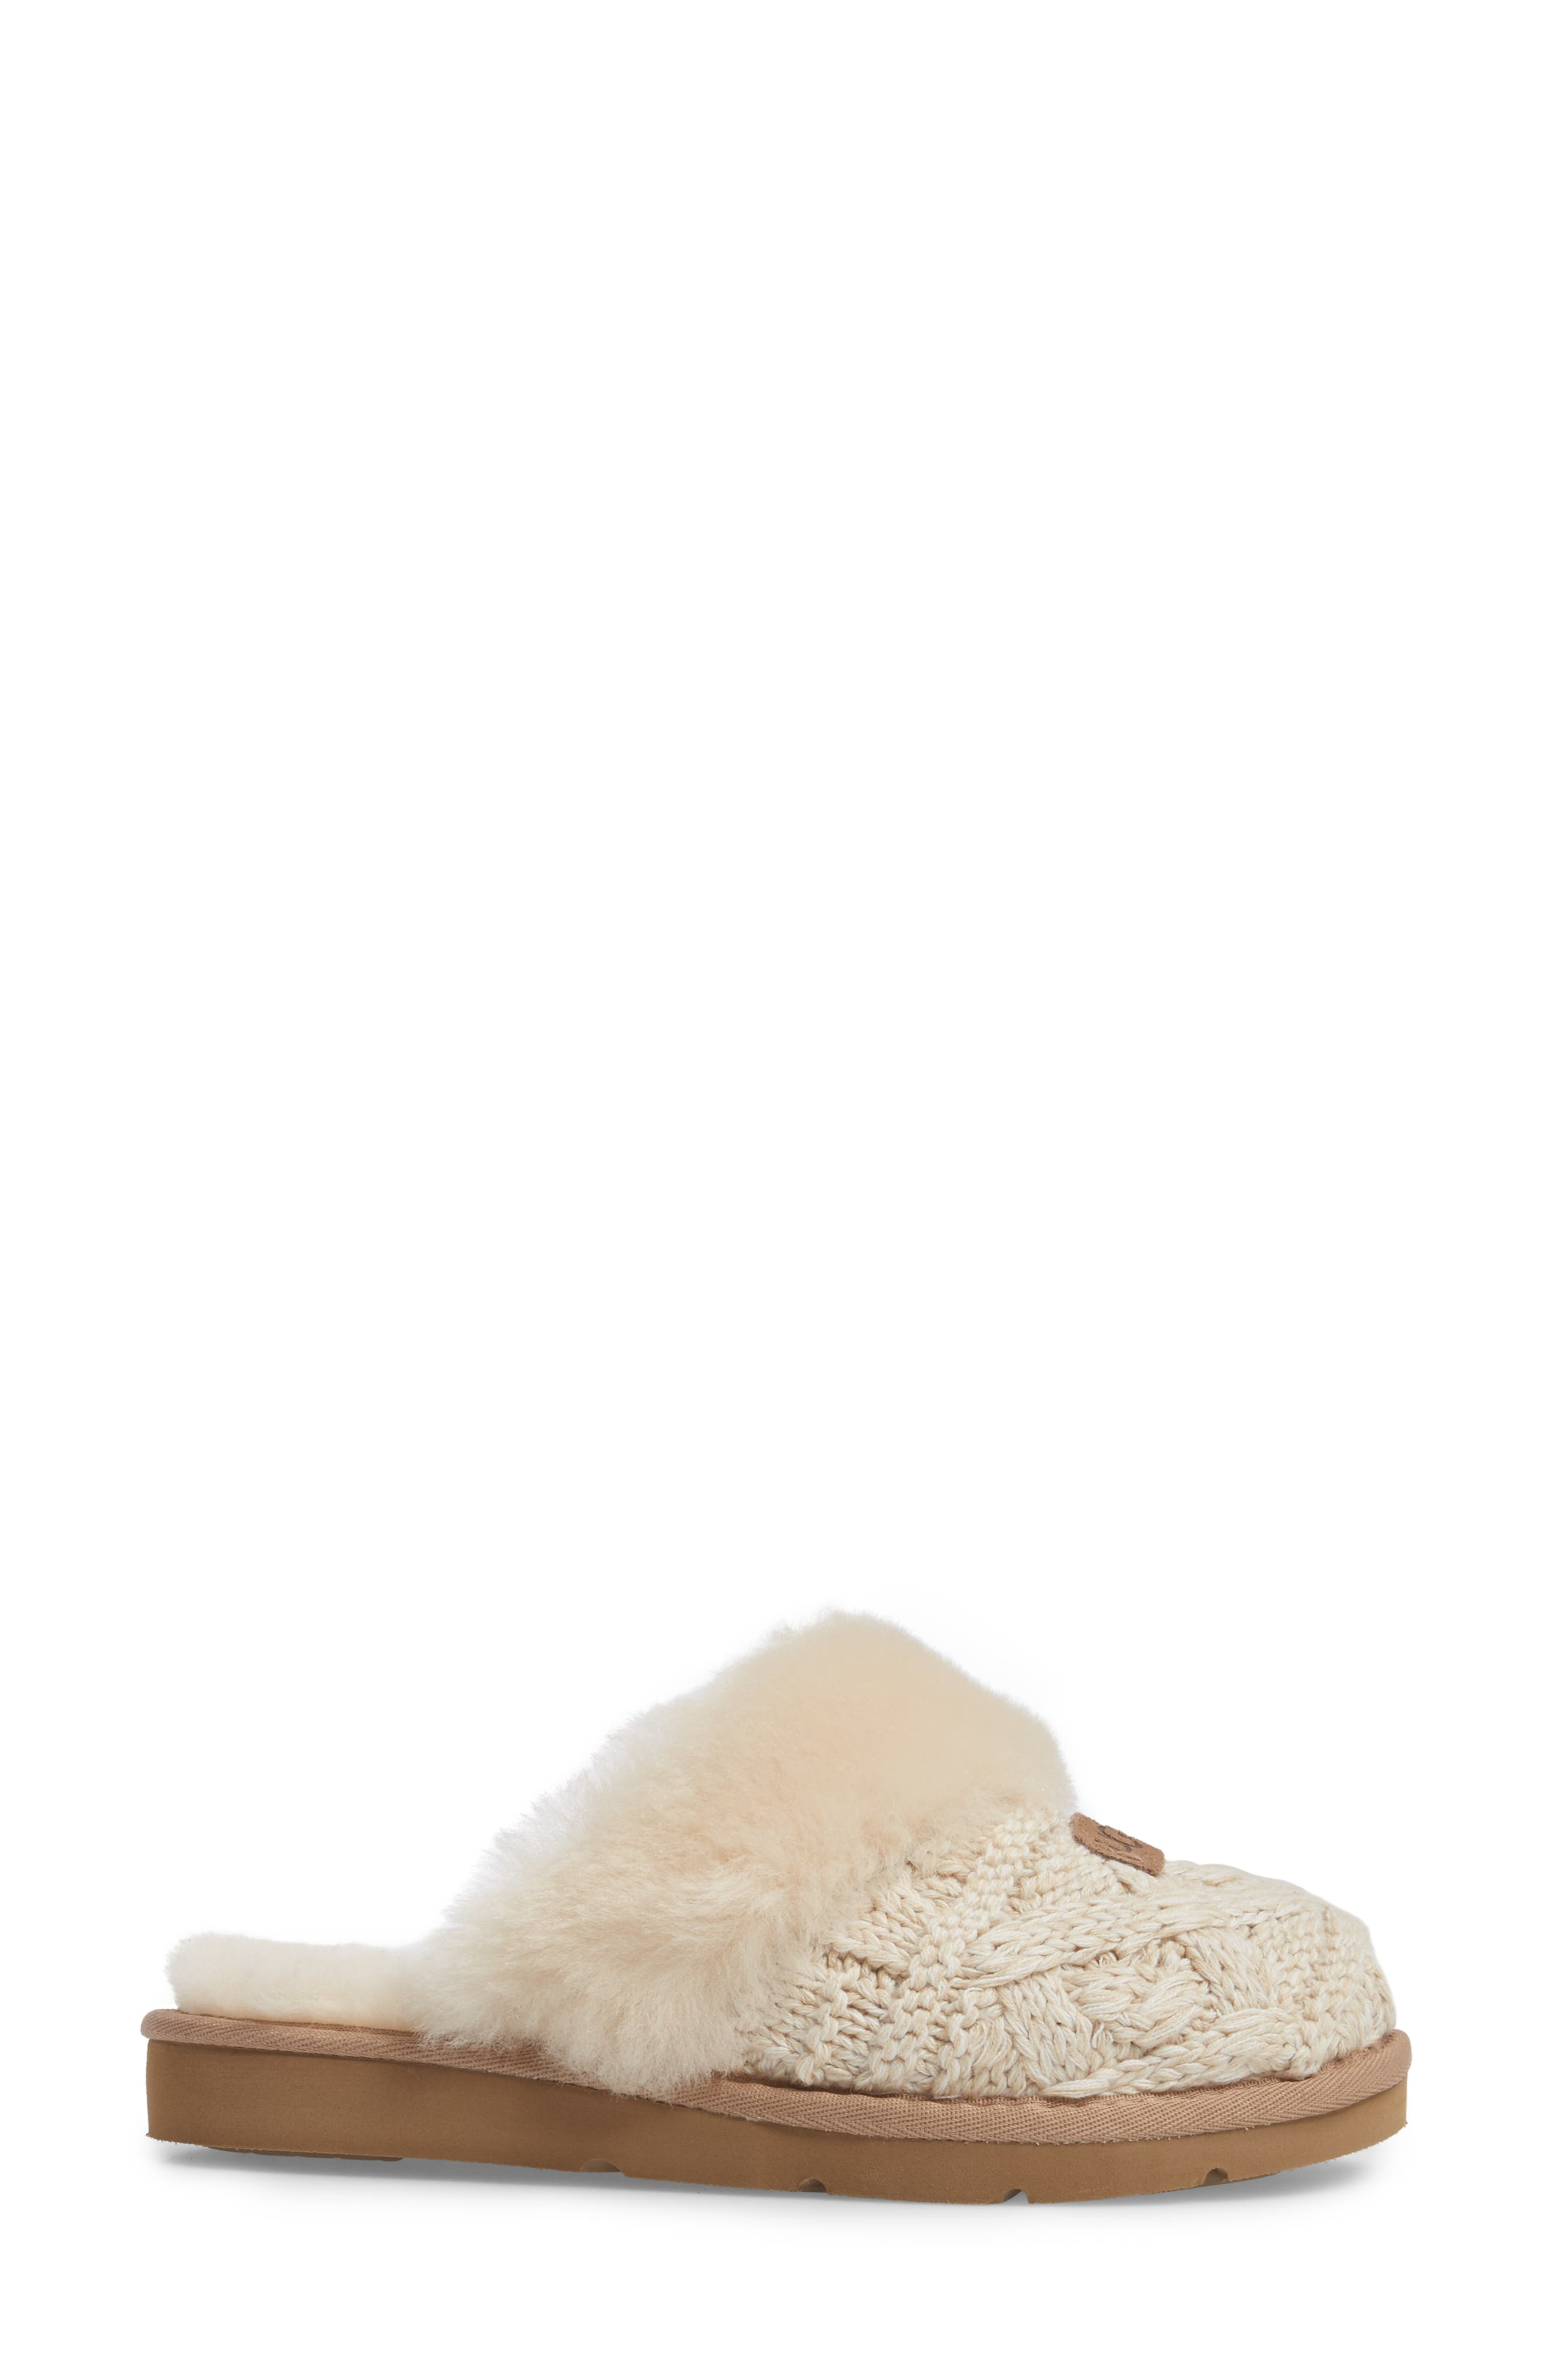 Alternate Image 3  - UGG® Cozy Cable Slipper (Women)